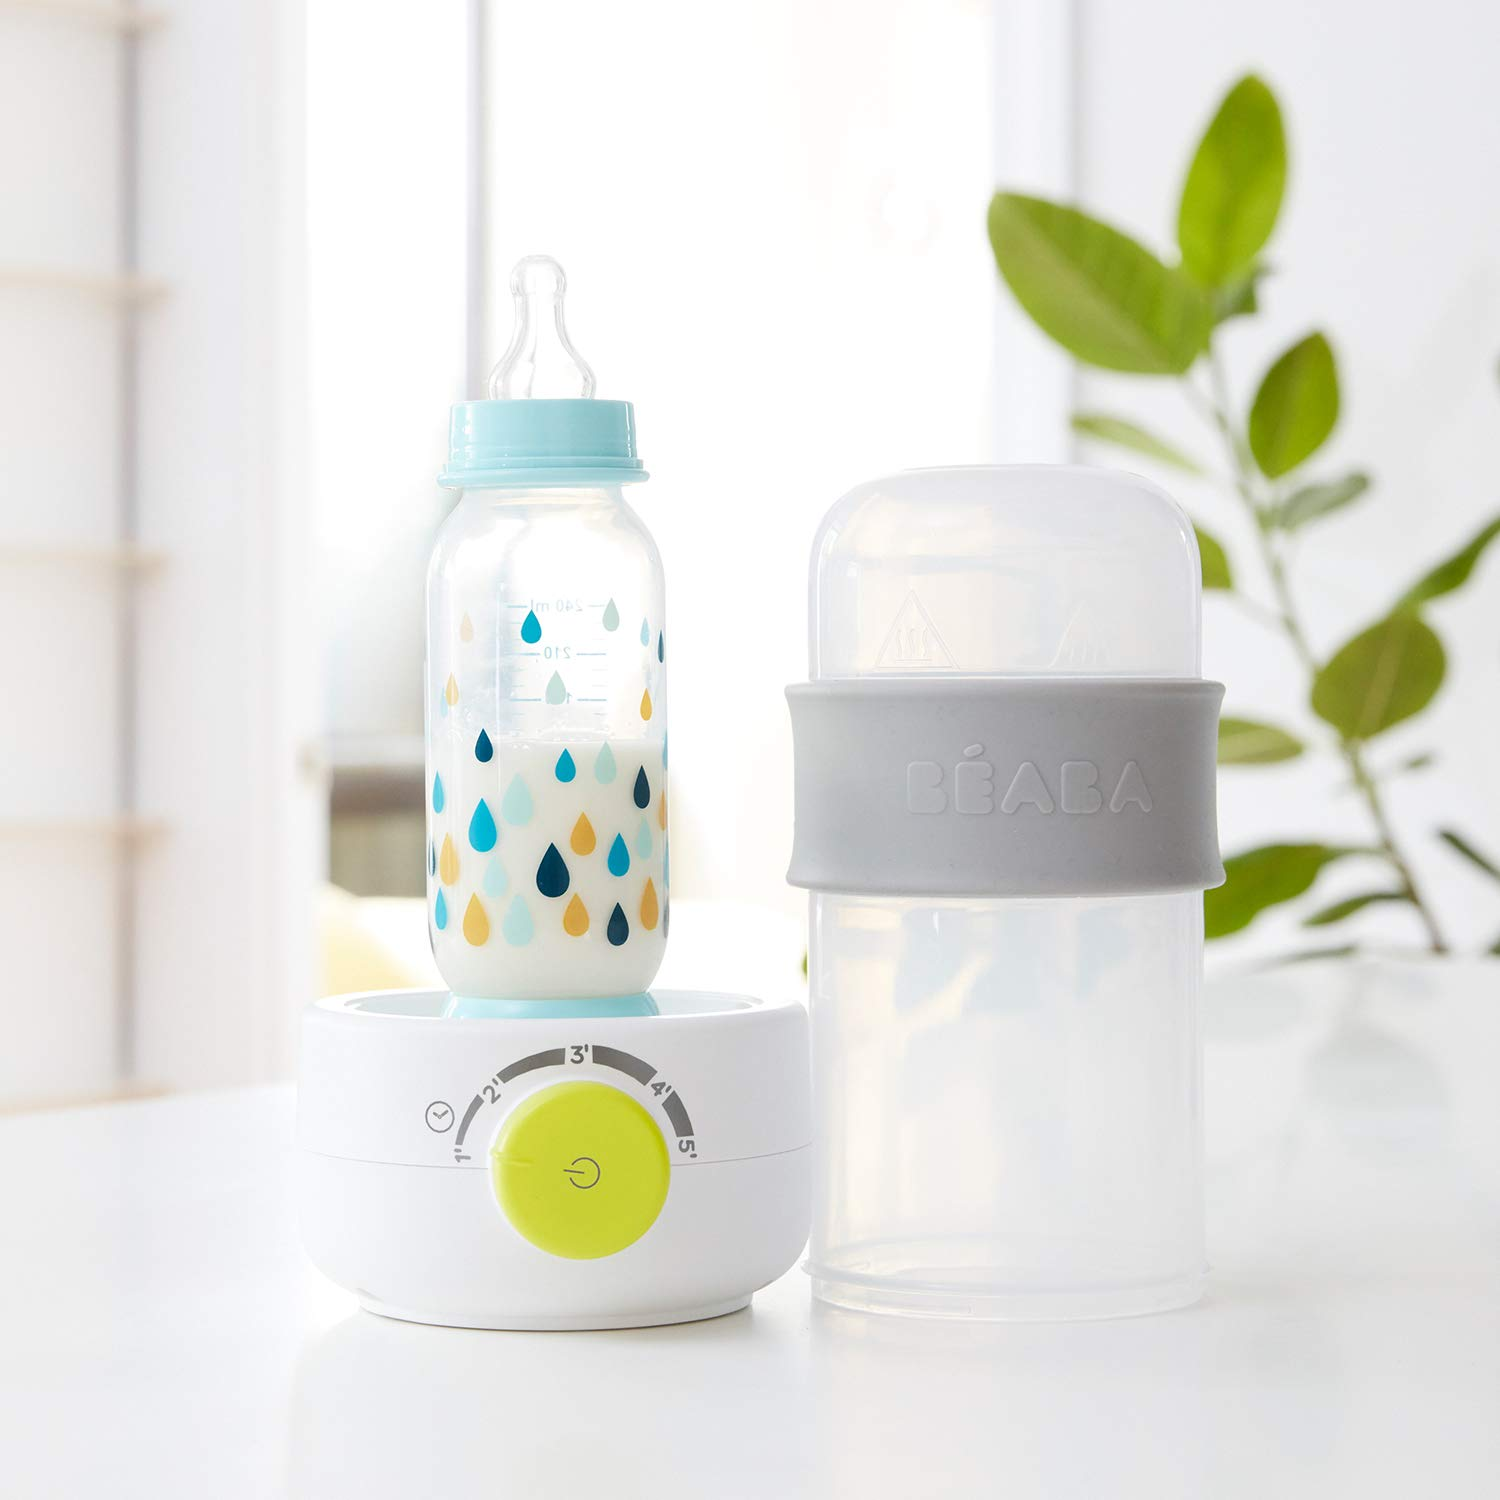 BEABA Quick Baby Bottle Warmer, Steam Sterilizer, Baby Food Heater (3-in-1) Warm Milk in Just Two Minutes, BPA and Lead Free, Simple Temperature Control, Fits All Bottle Sizes - Even Wide Neck (Cloud) by BEABA